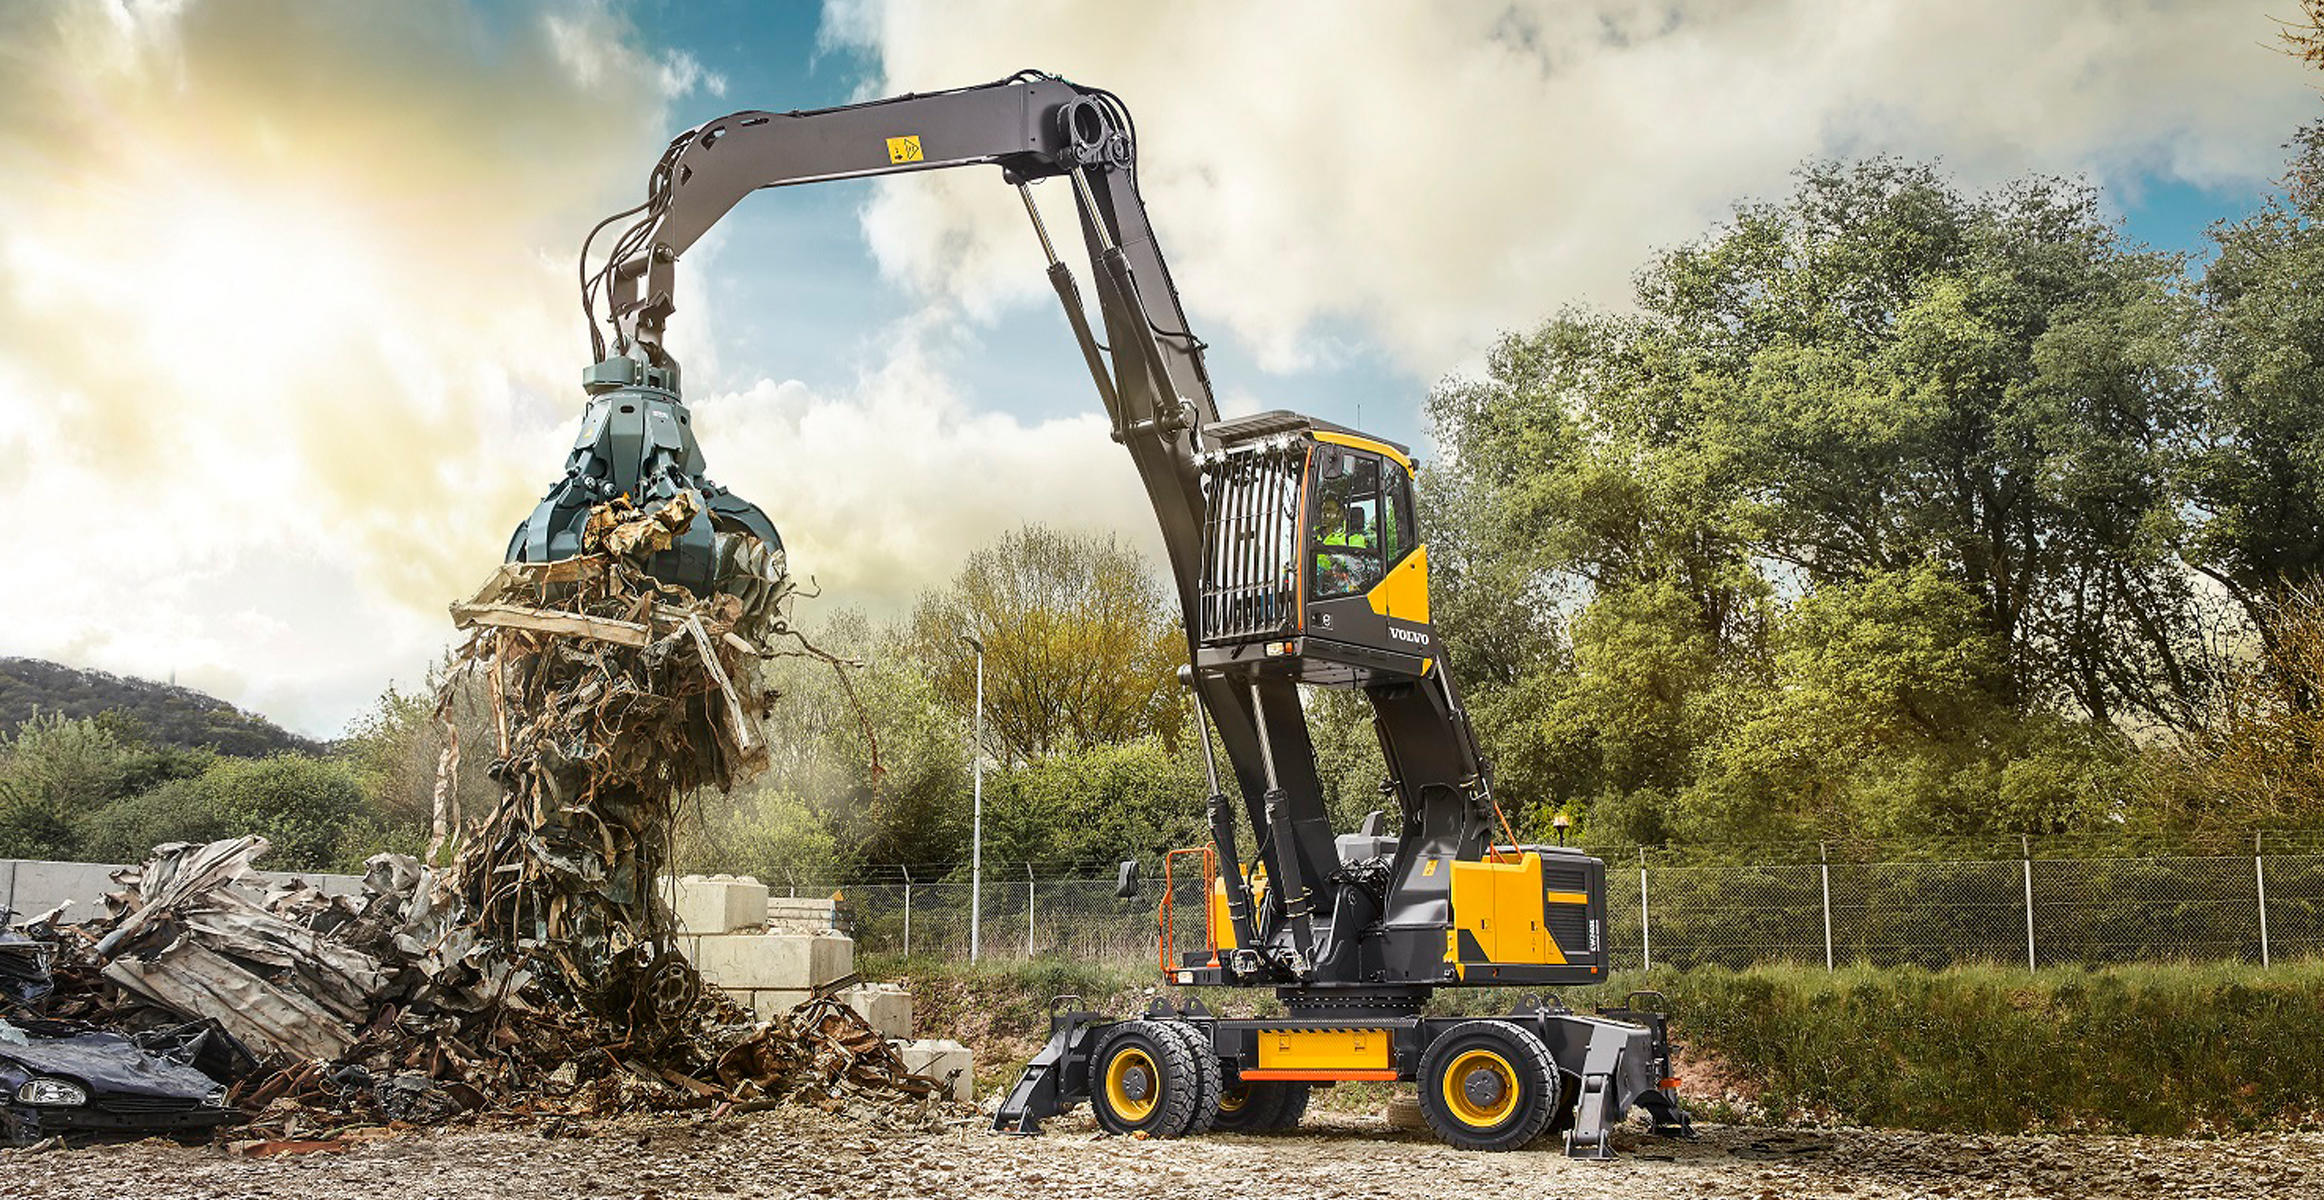 What are the different types of excavators?